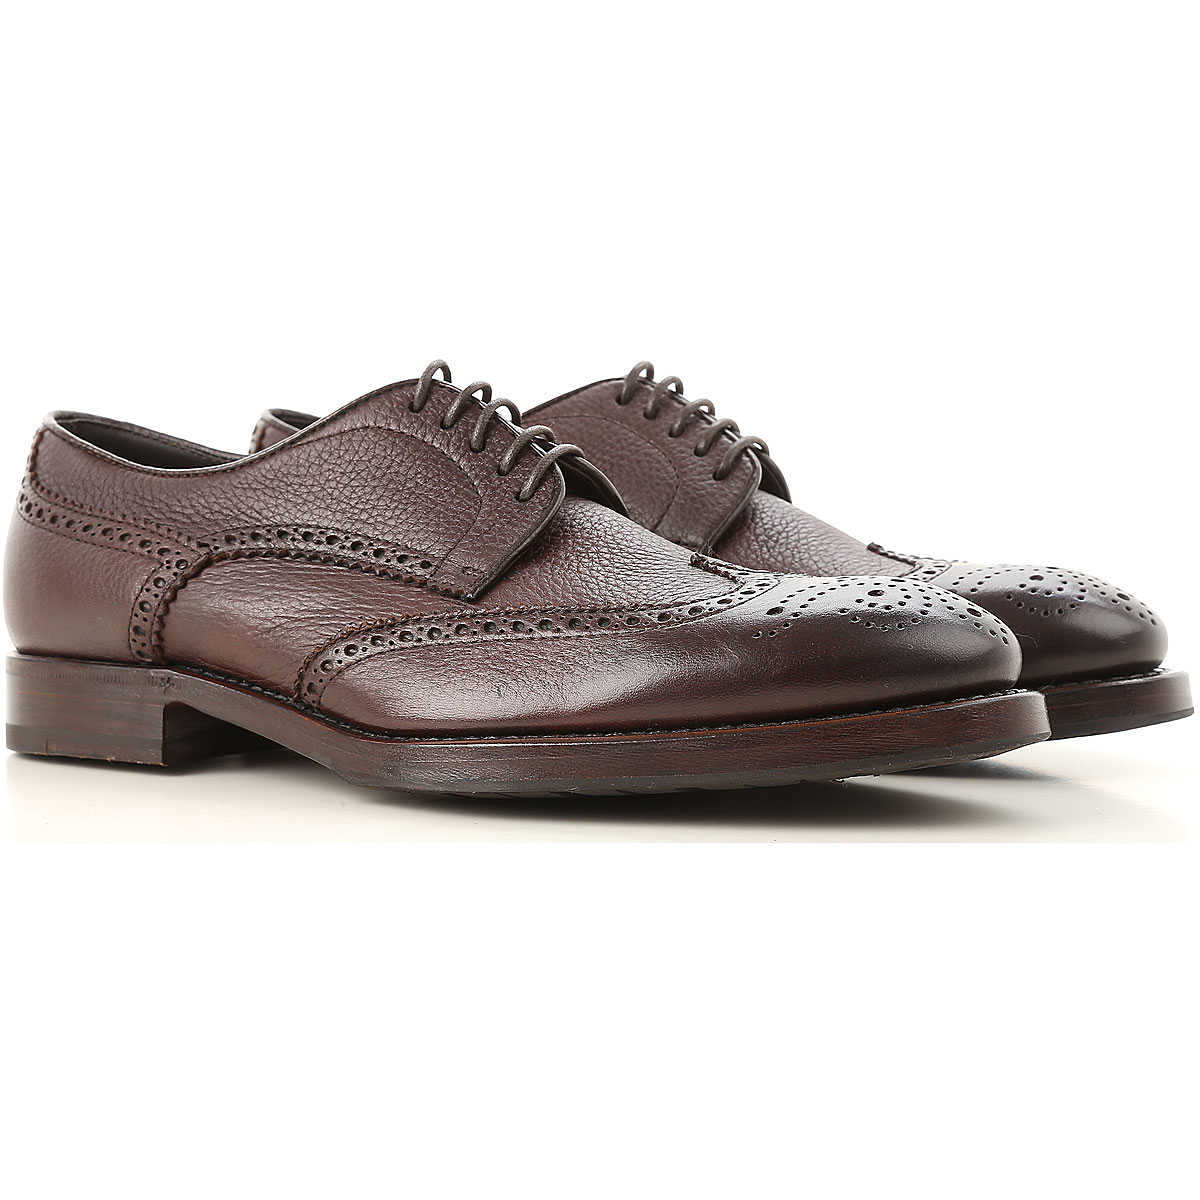 Henderson Lace Up Shoes for Men Oxfords 10 10.5 5.5 6 6.5 7 7.5 8 8.5 9 9.5 Derbies and Brogues On Sale UK - GOOFASH